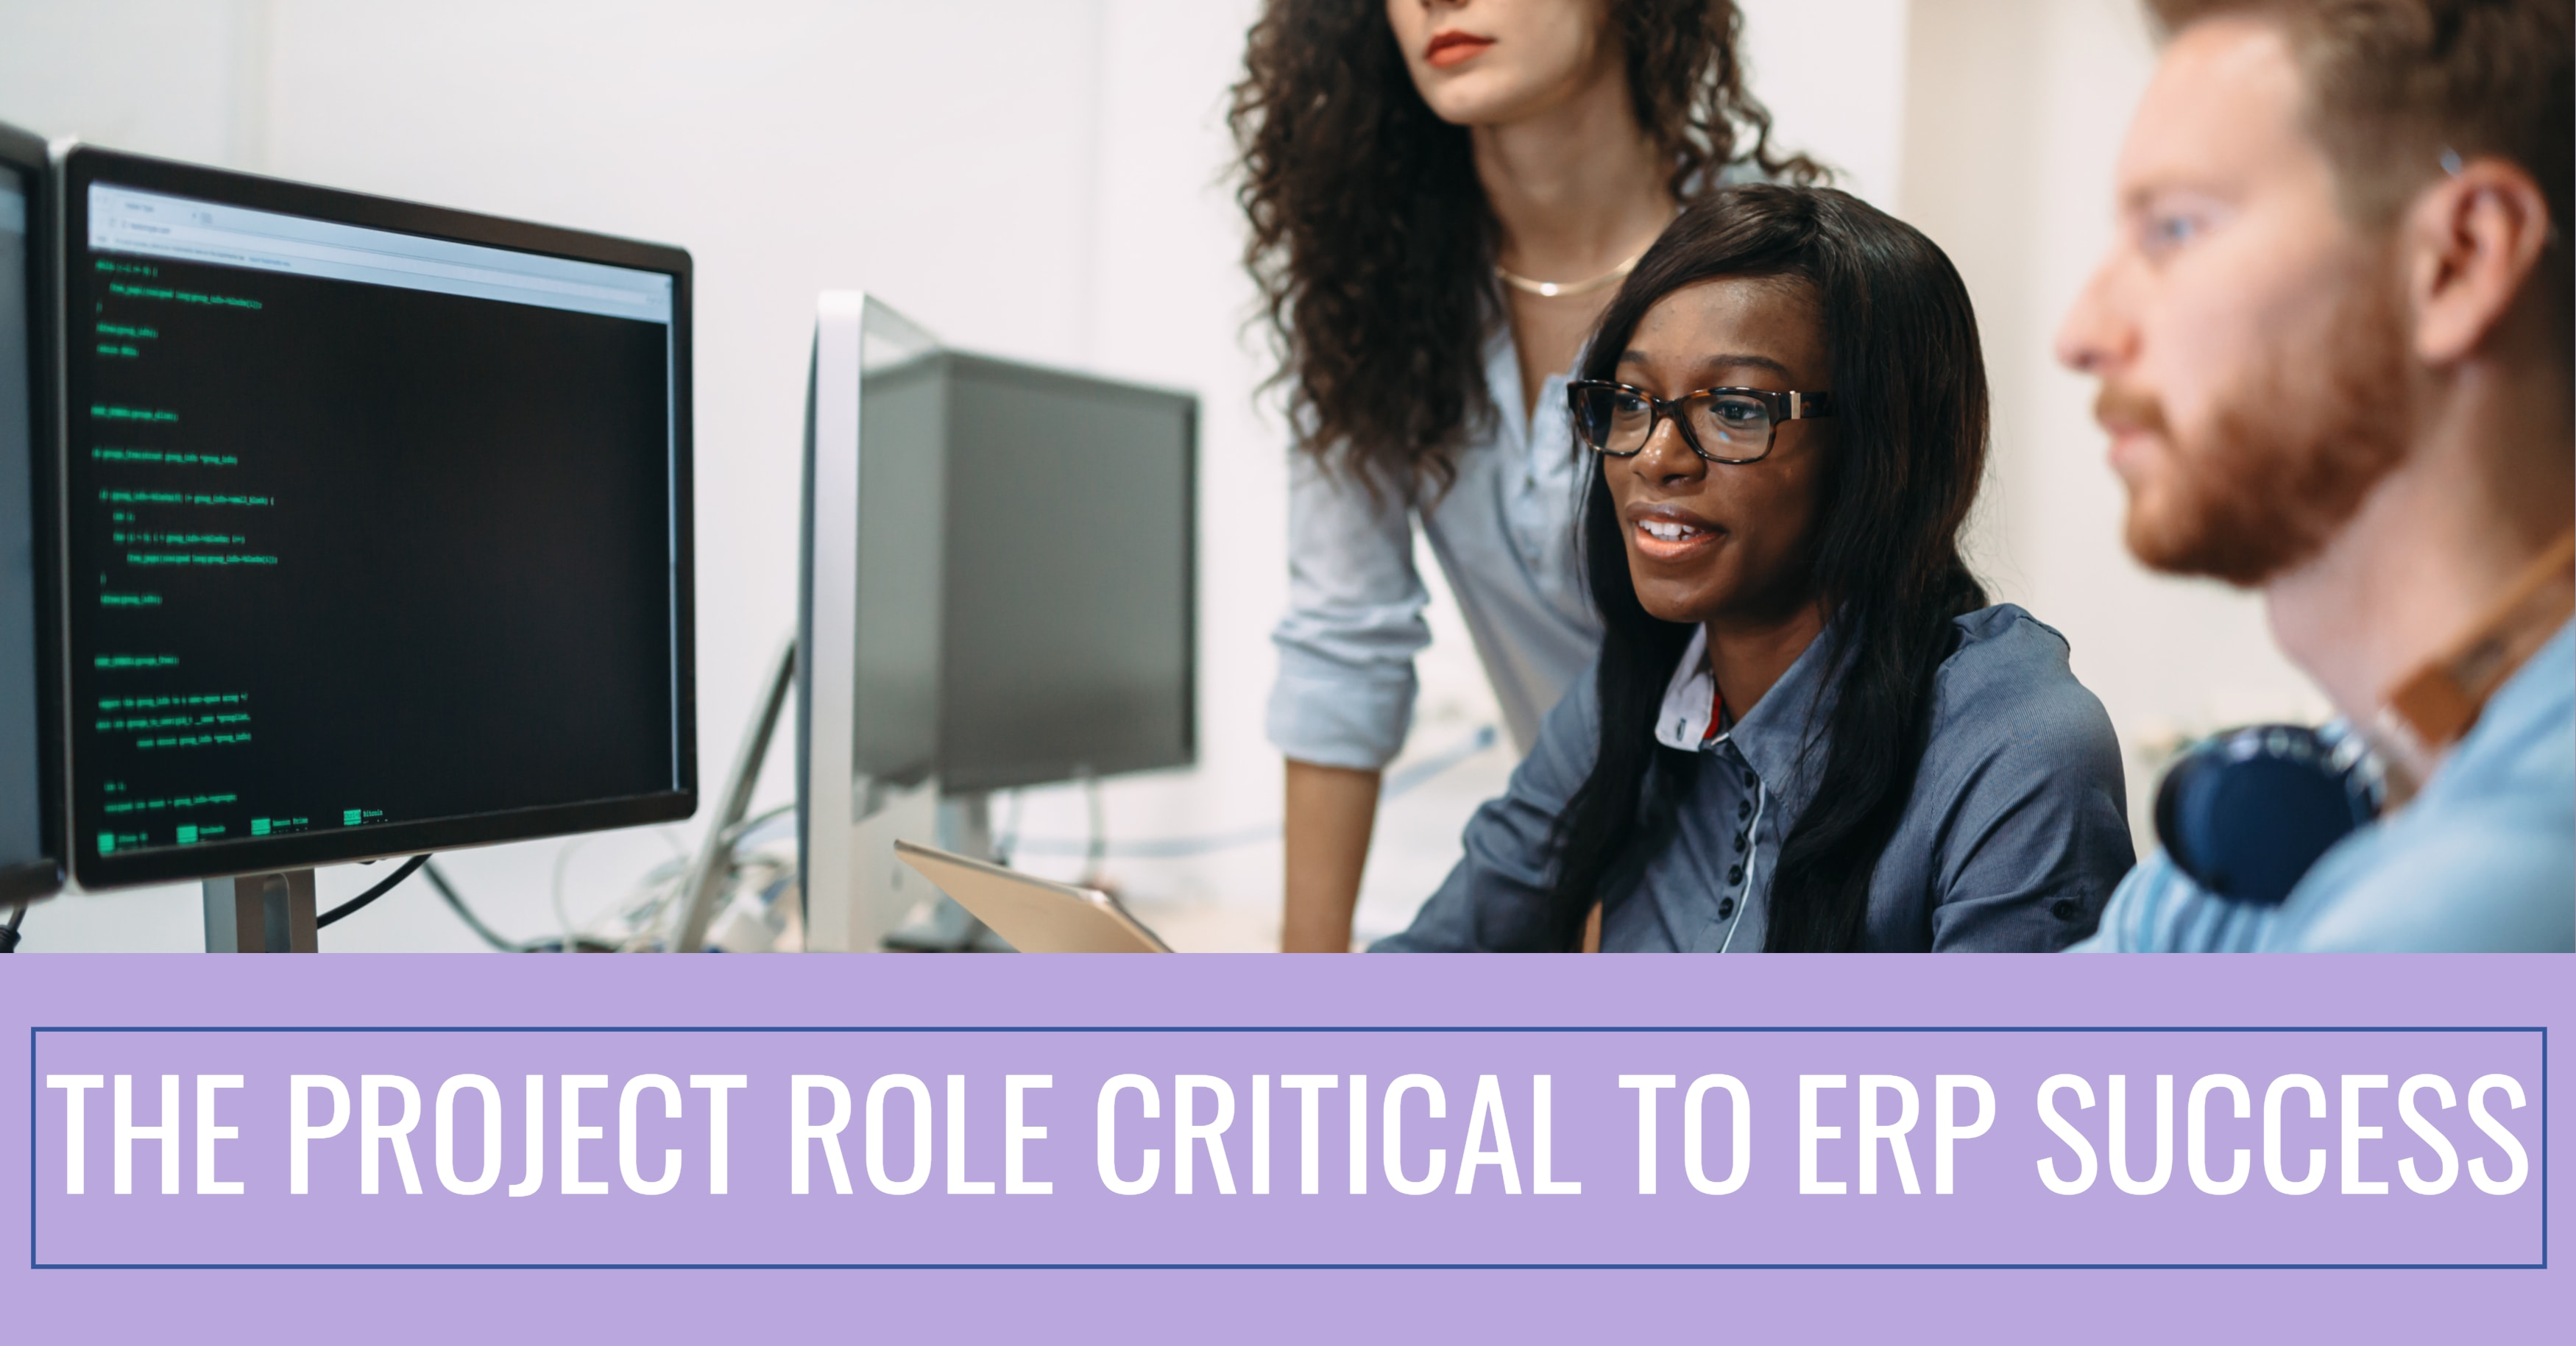 The Project Role Critical to ERP Success